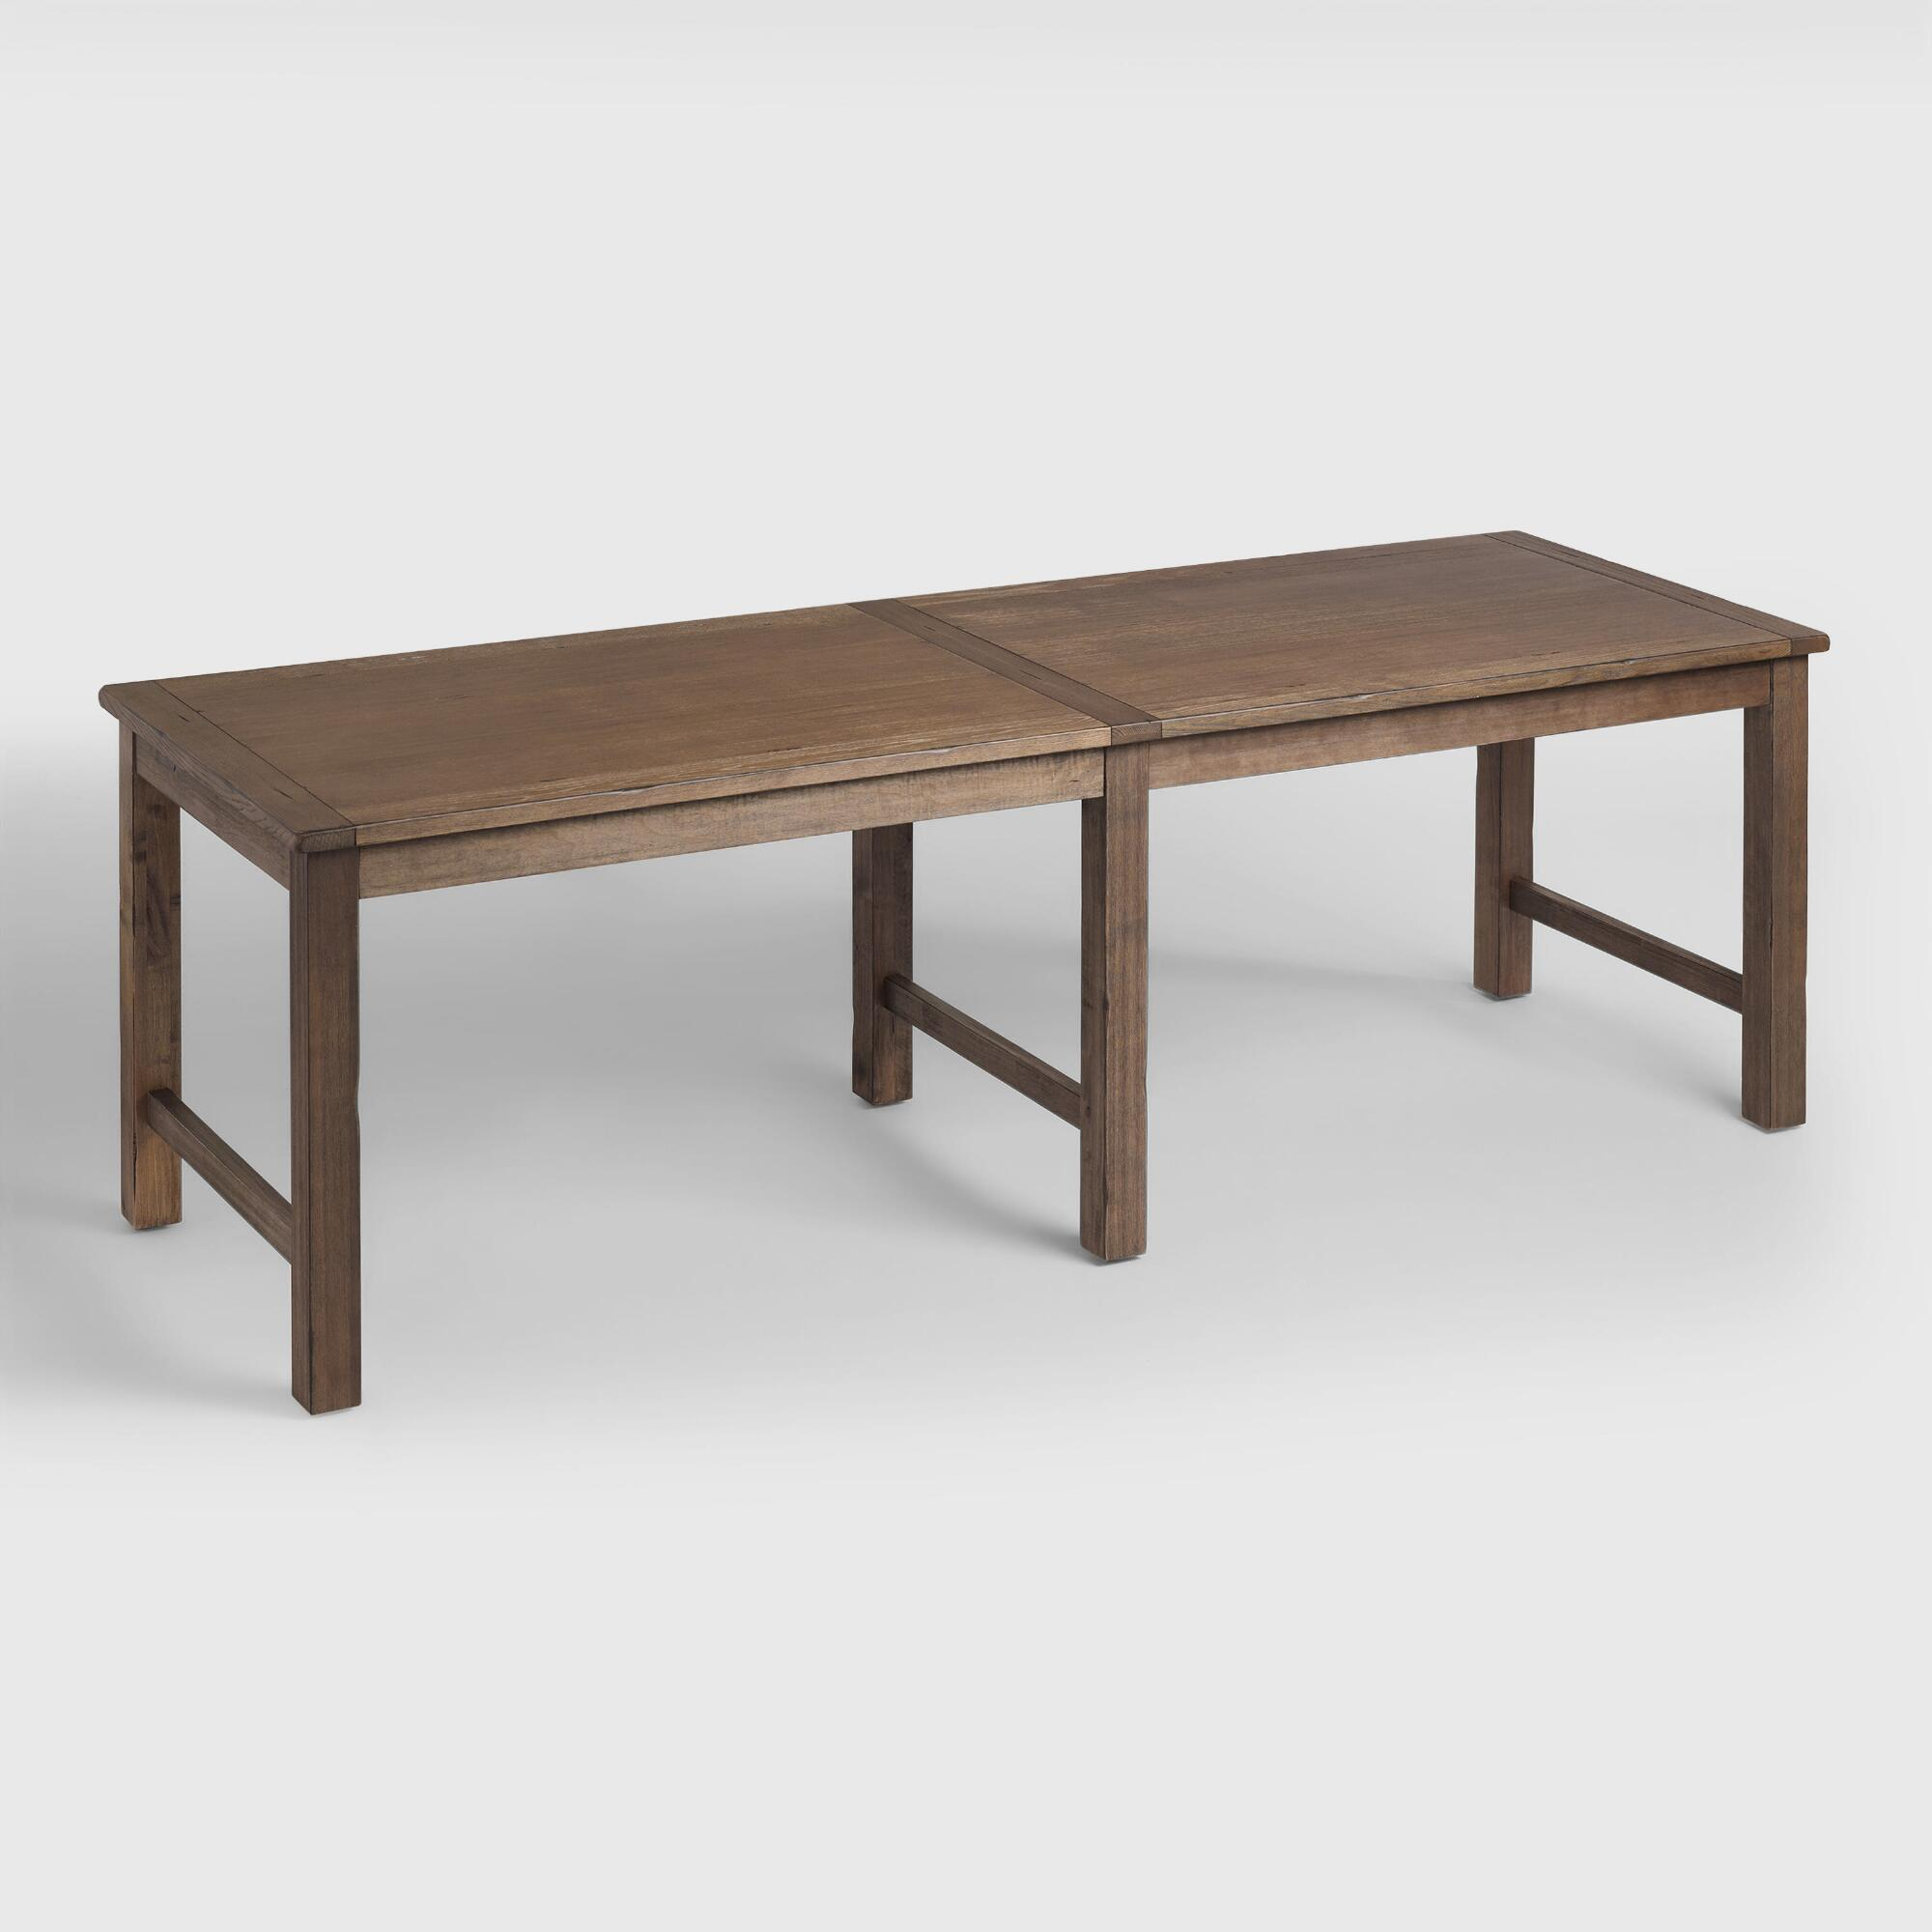 Distressed brown wood gulianna extra long dining table for Dinner table wood